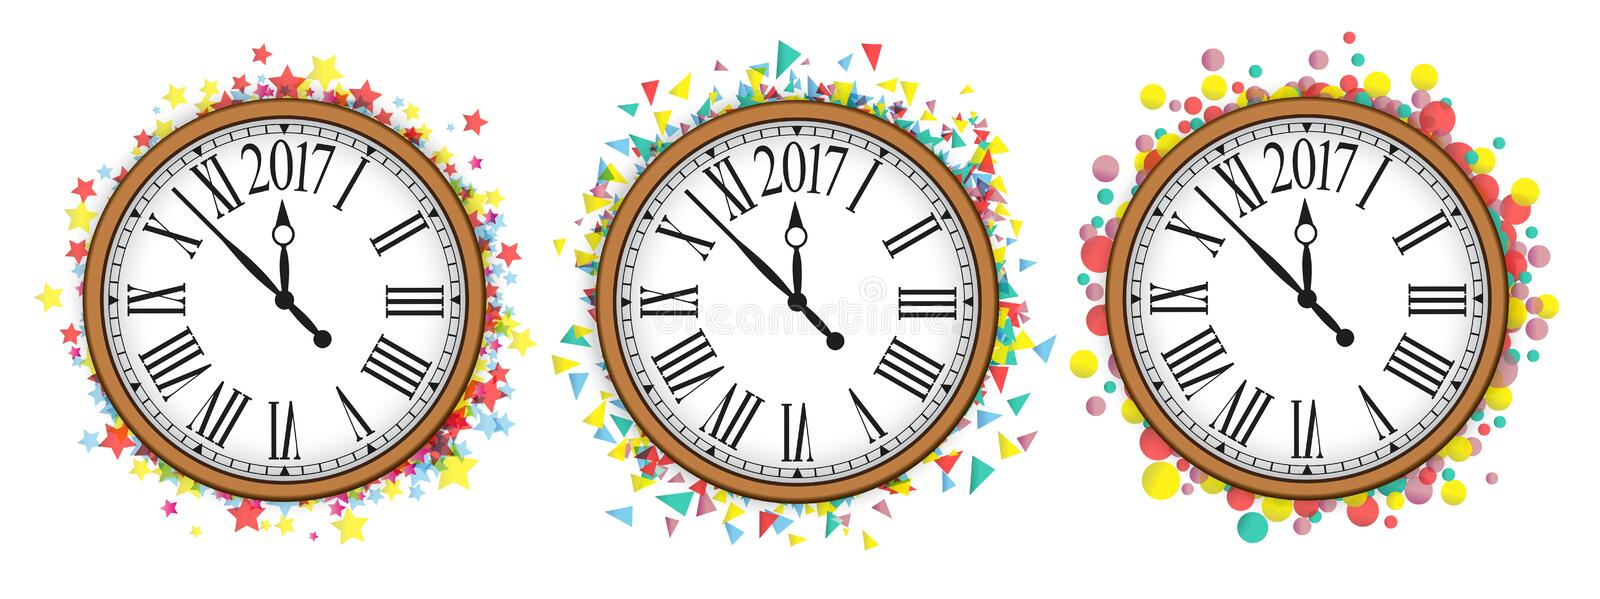 Confetti with text 2017 and vintage clock vector illustration